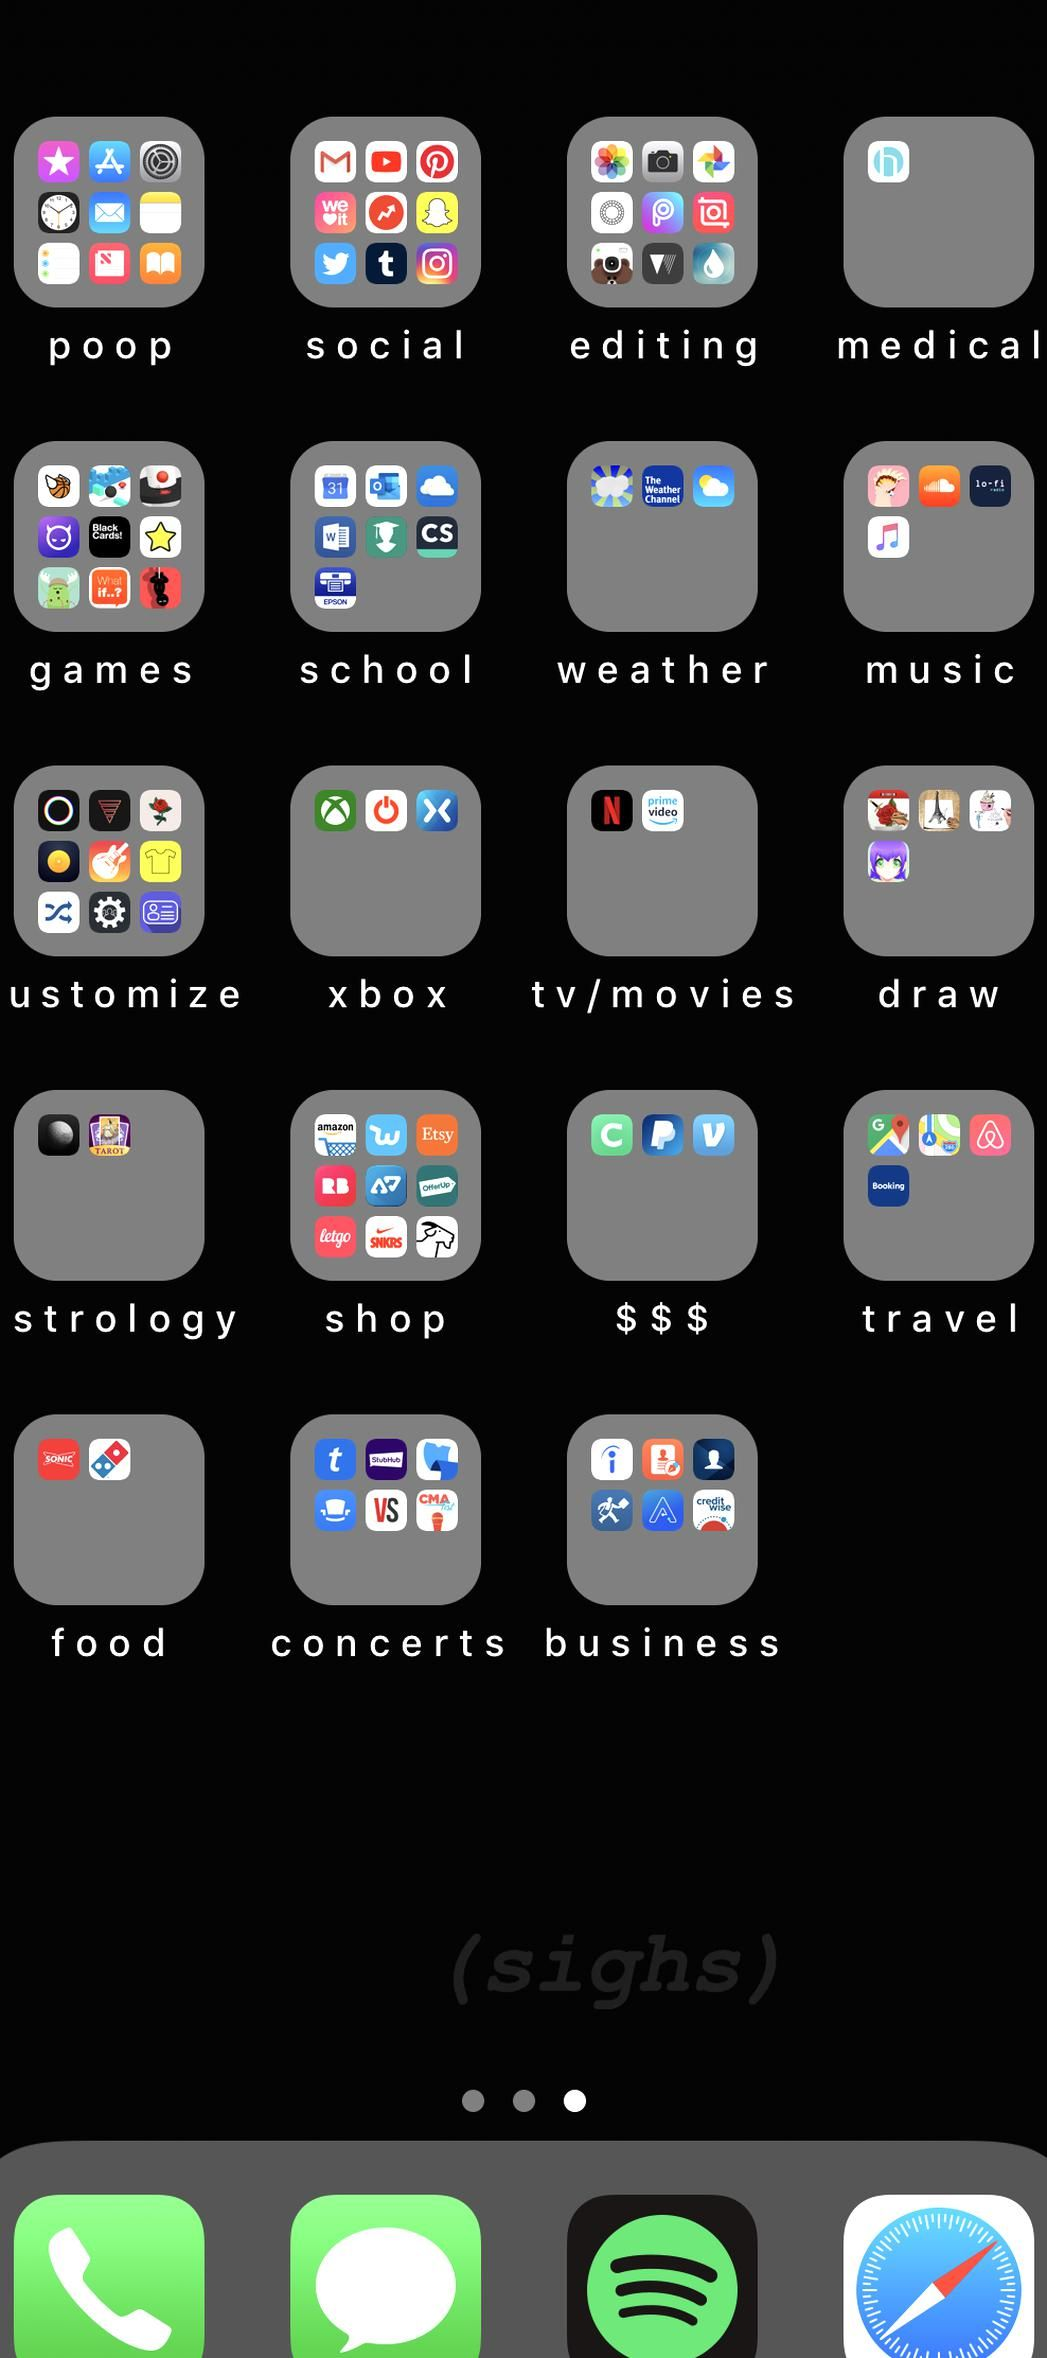 My iPhone home screen layout in 2020 Iphone home screen